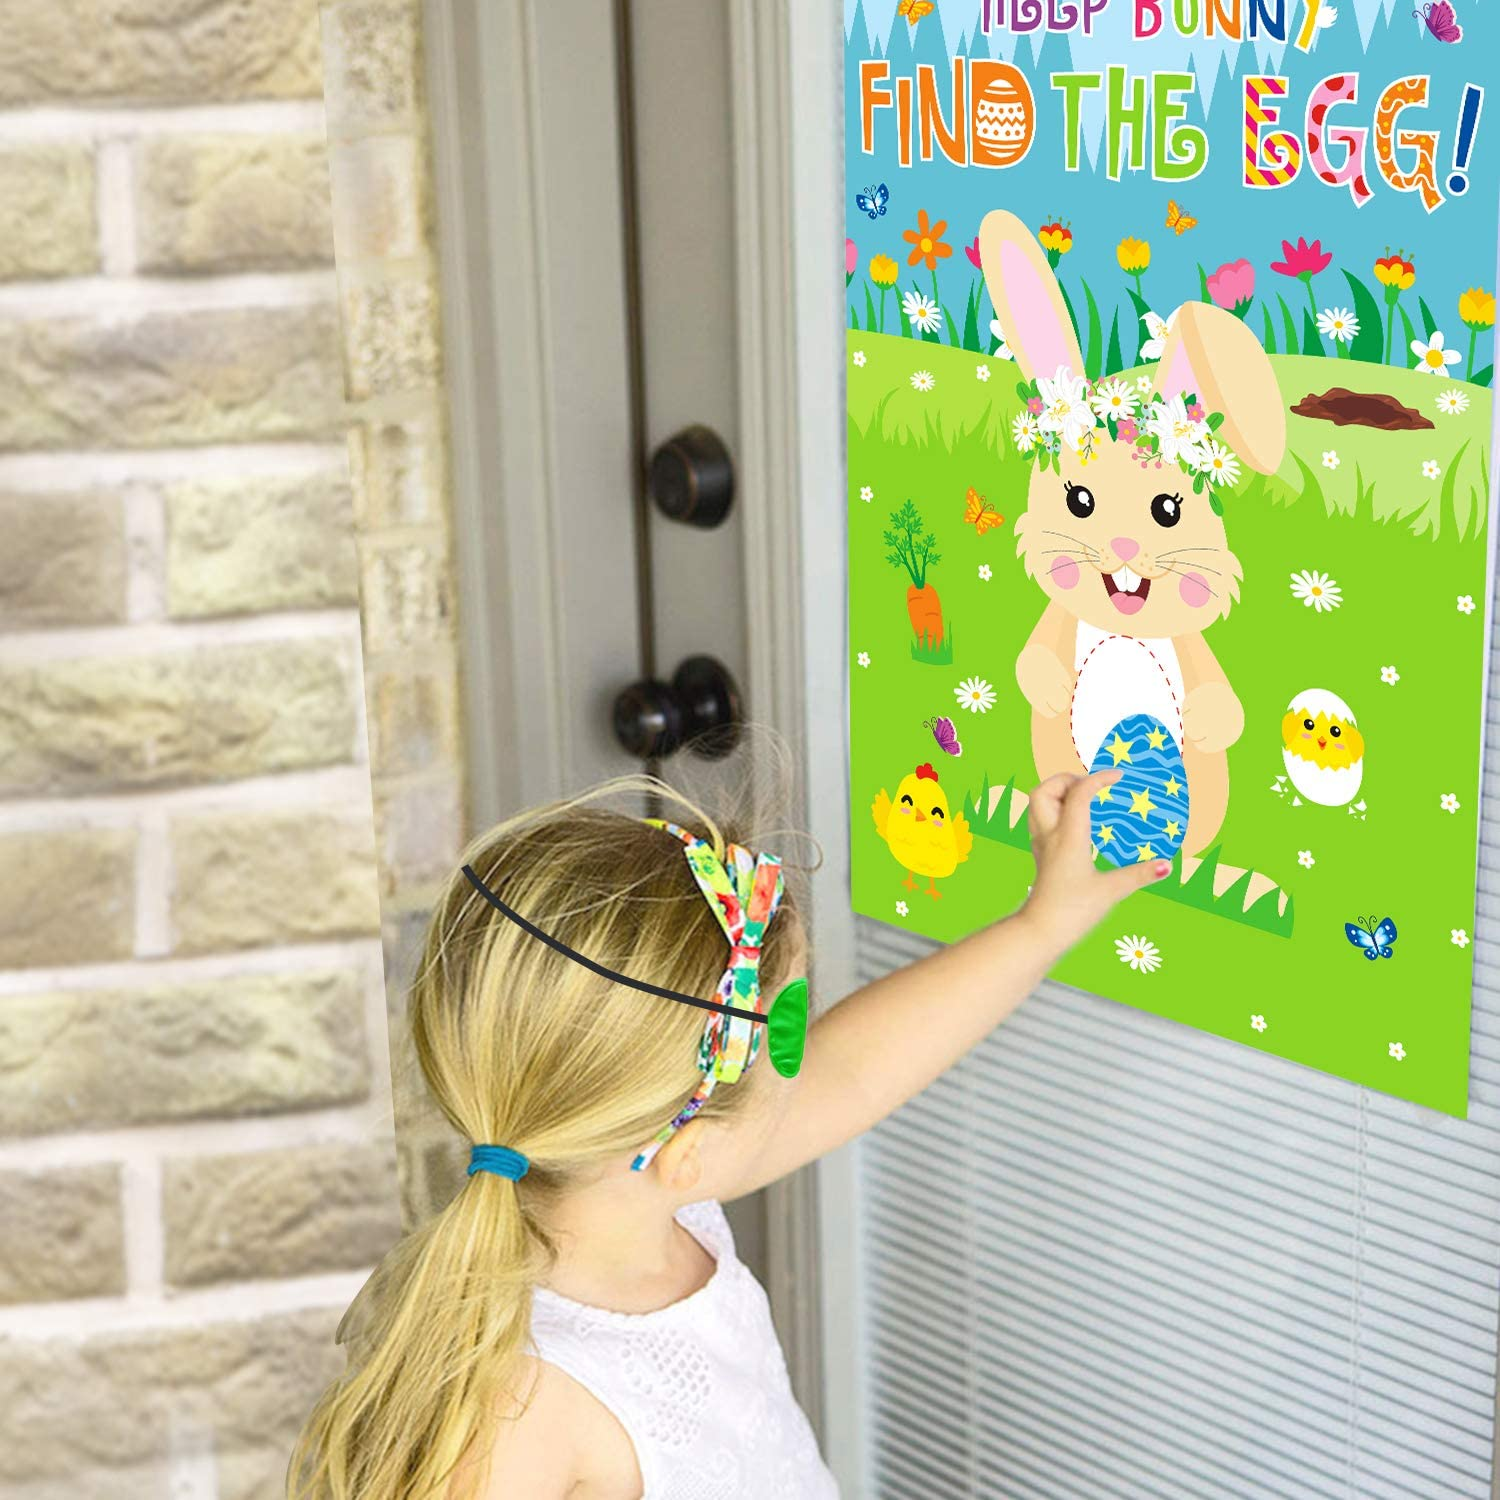 Bunny Toss Games Banner Beanbags Cornhole Game Pin The Egg Game Help Bunny Find The Egg Large Poster for Kids Adults Family School Indoor Outdoor Party Ideas CiyvoLyeen Easter Games Kit